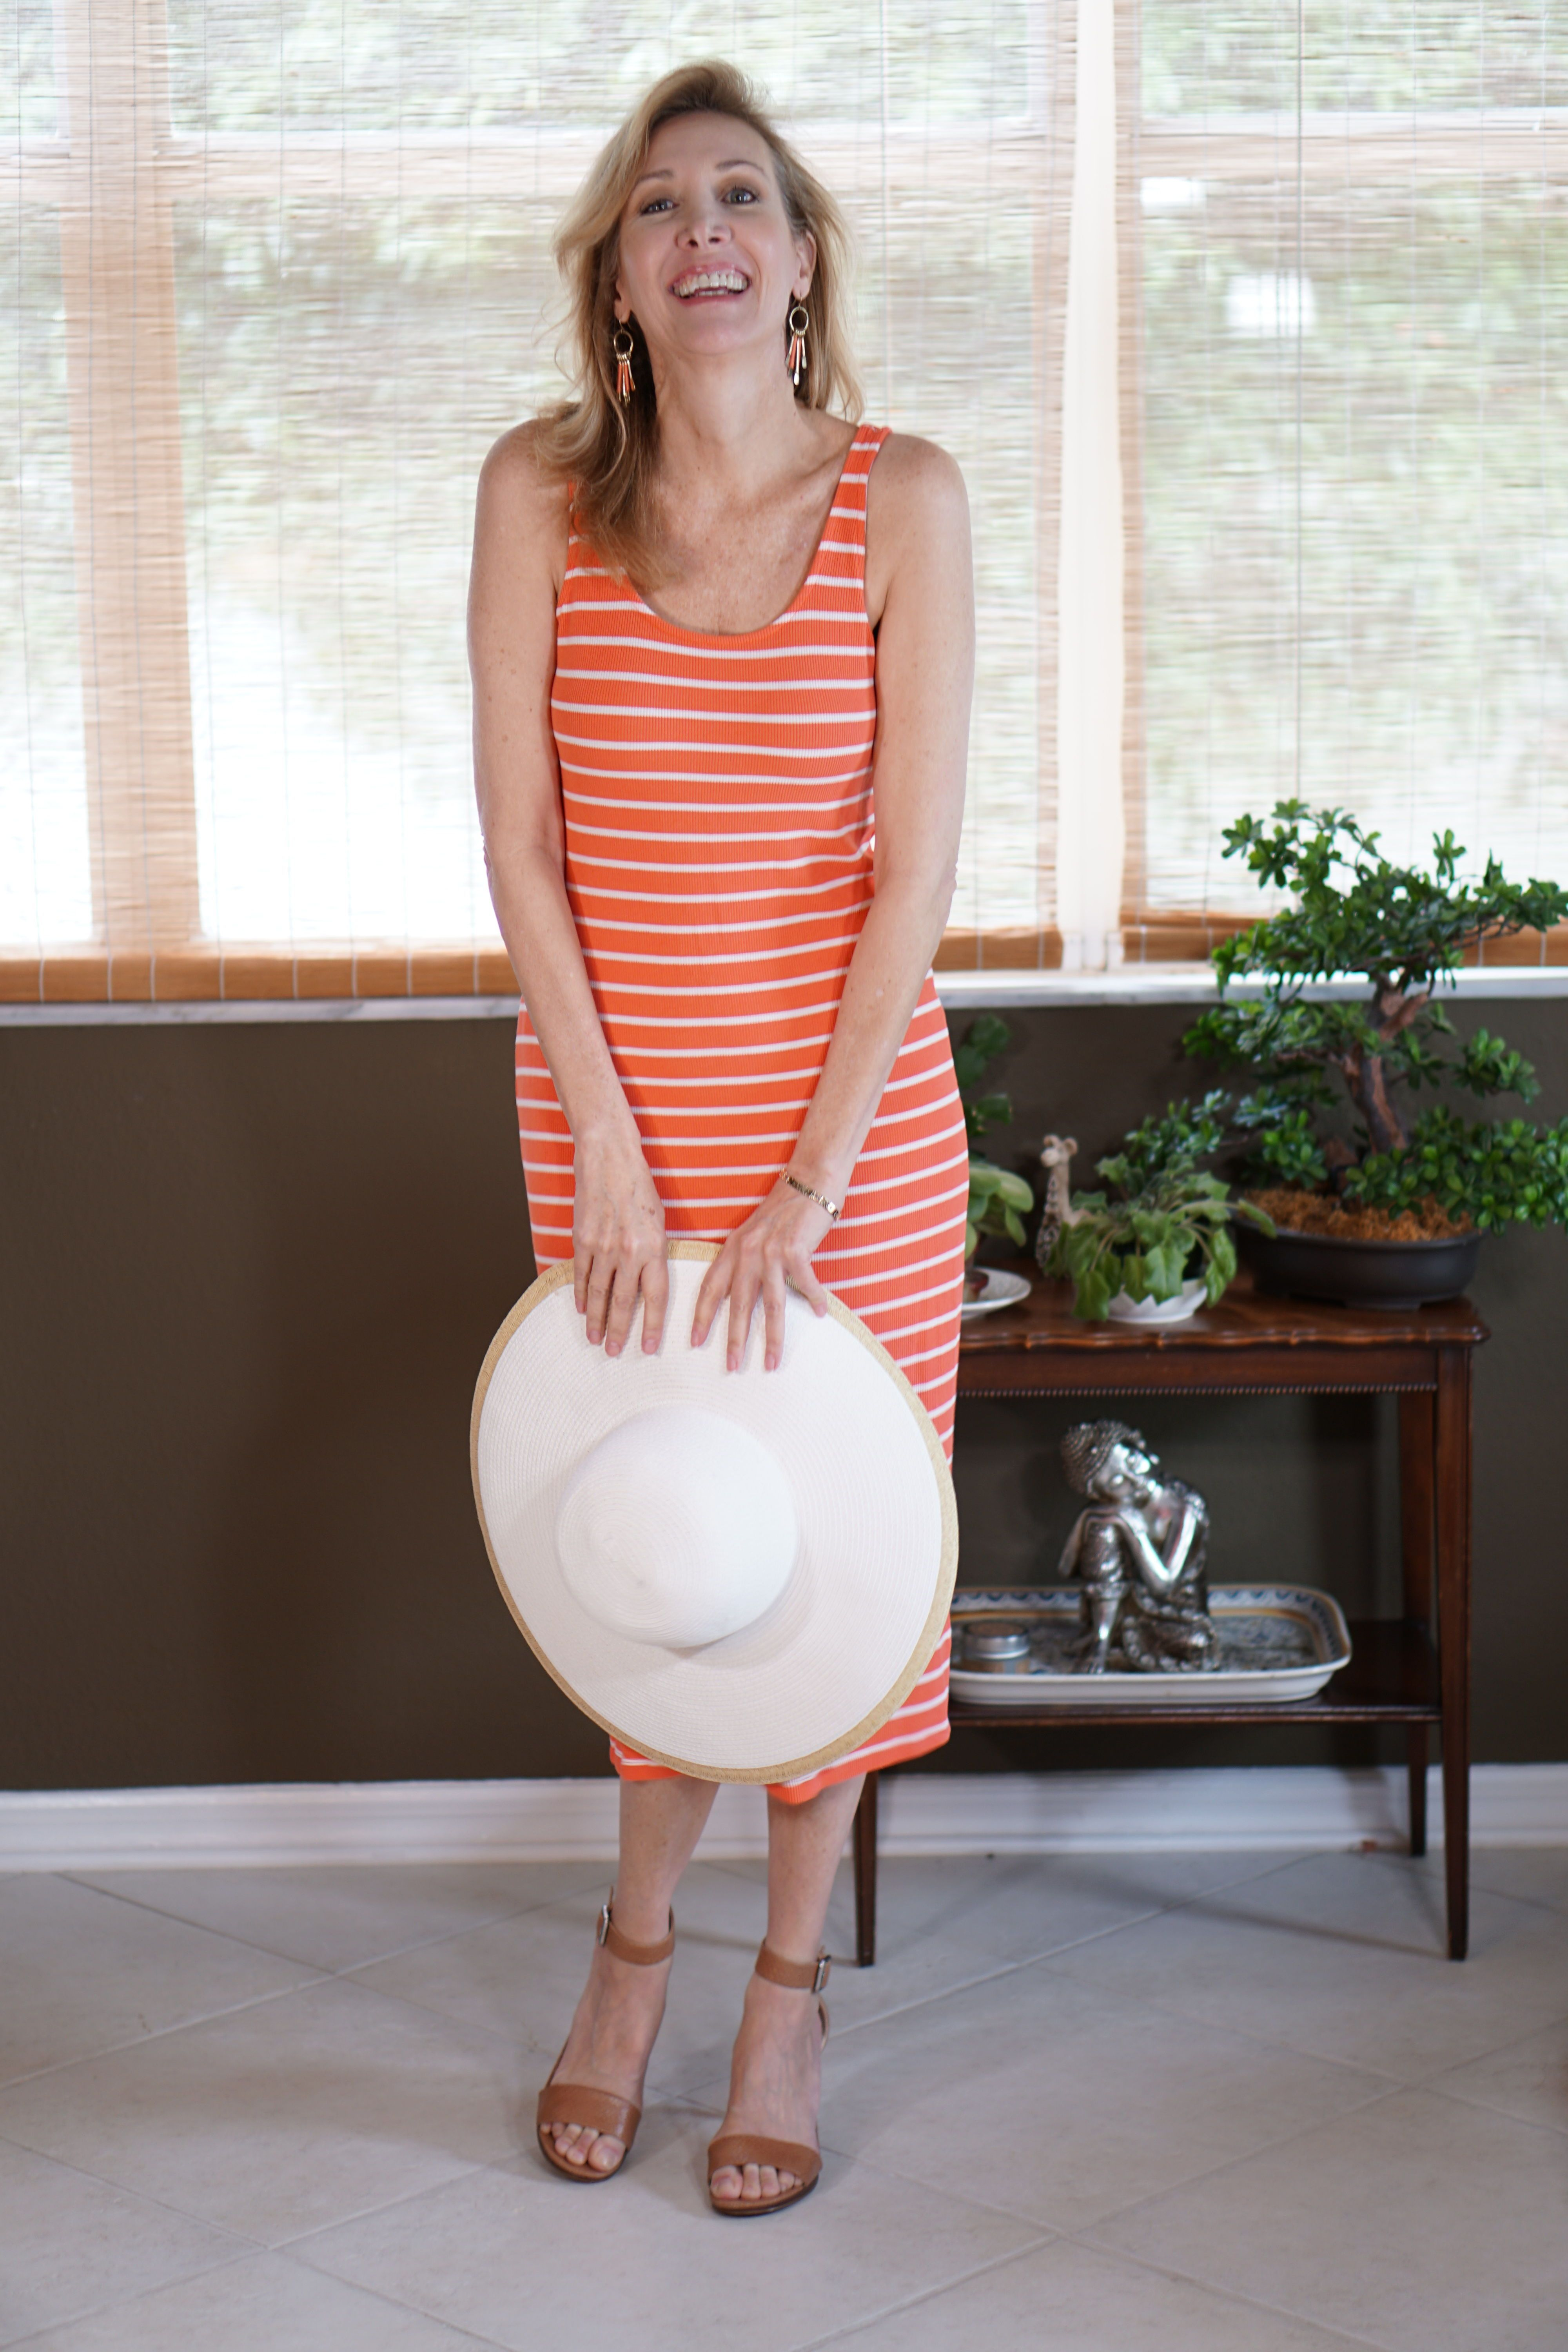 Casual Summer Dress For Women Over 50 This Orange Striped Mini Dress Can Be Dressed Up Or Down W Summer Dresses For Women Summer Dresses Casual Summer Dresses [ 6000 x 4000 Pixel ]